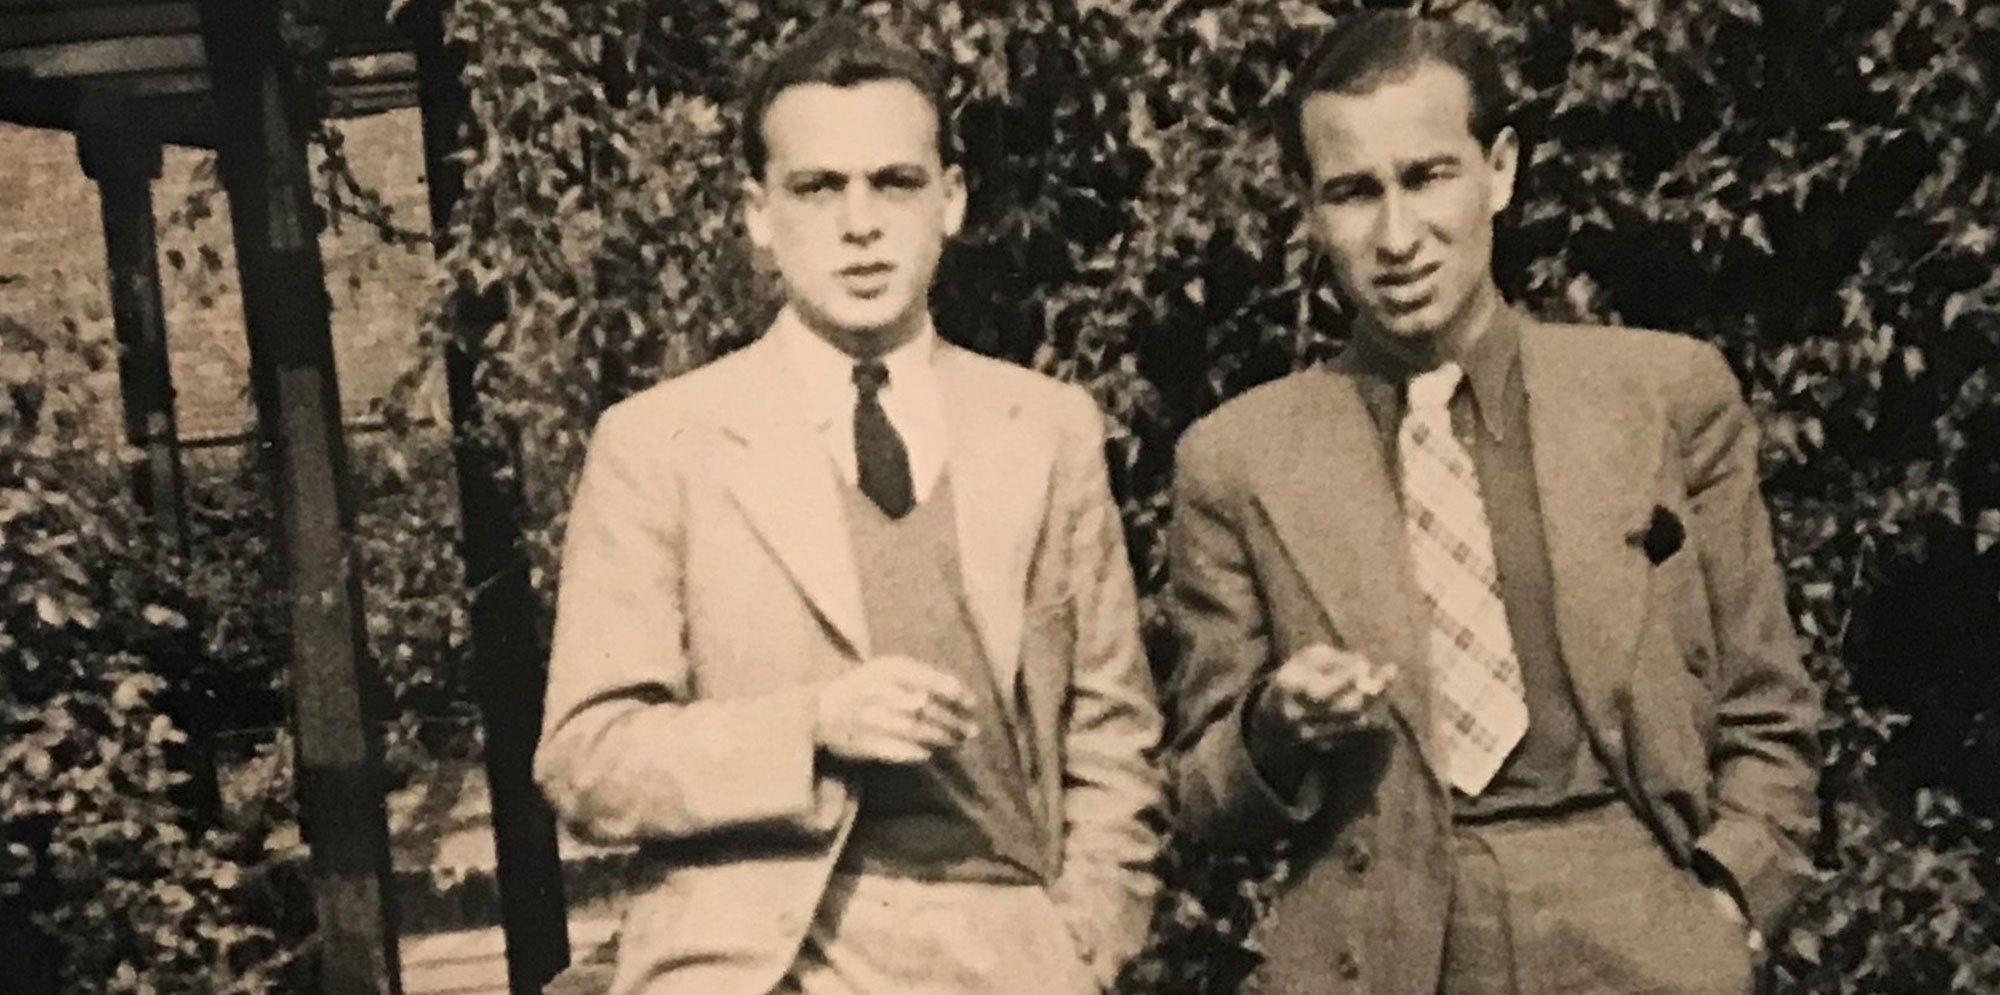 An old sepia image of two men standing in garden, holding cigarettes